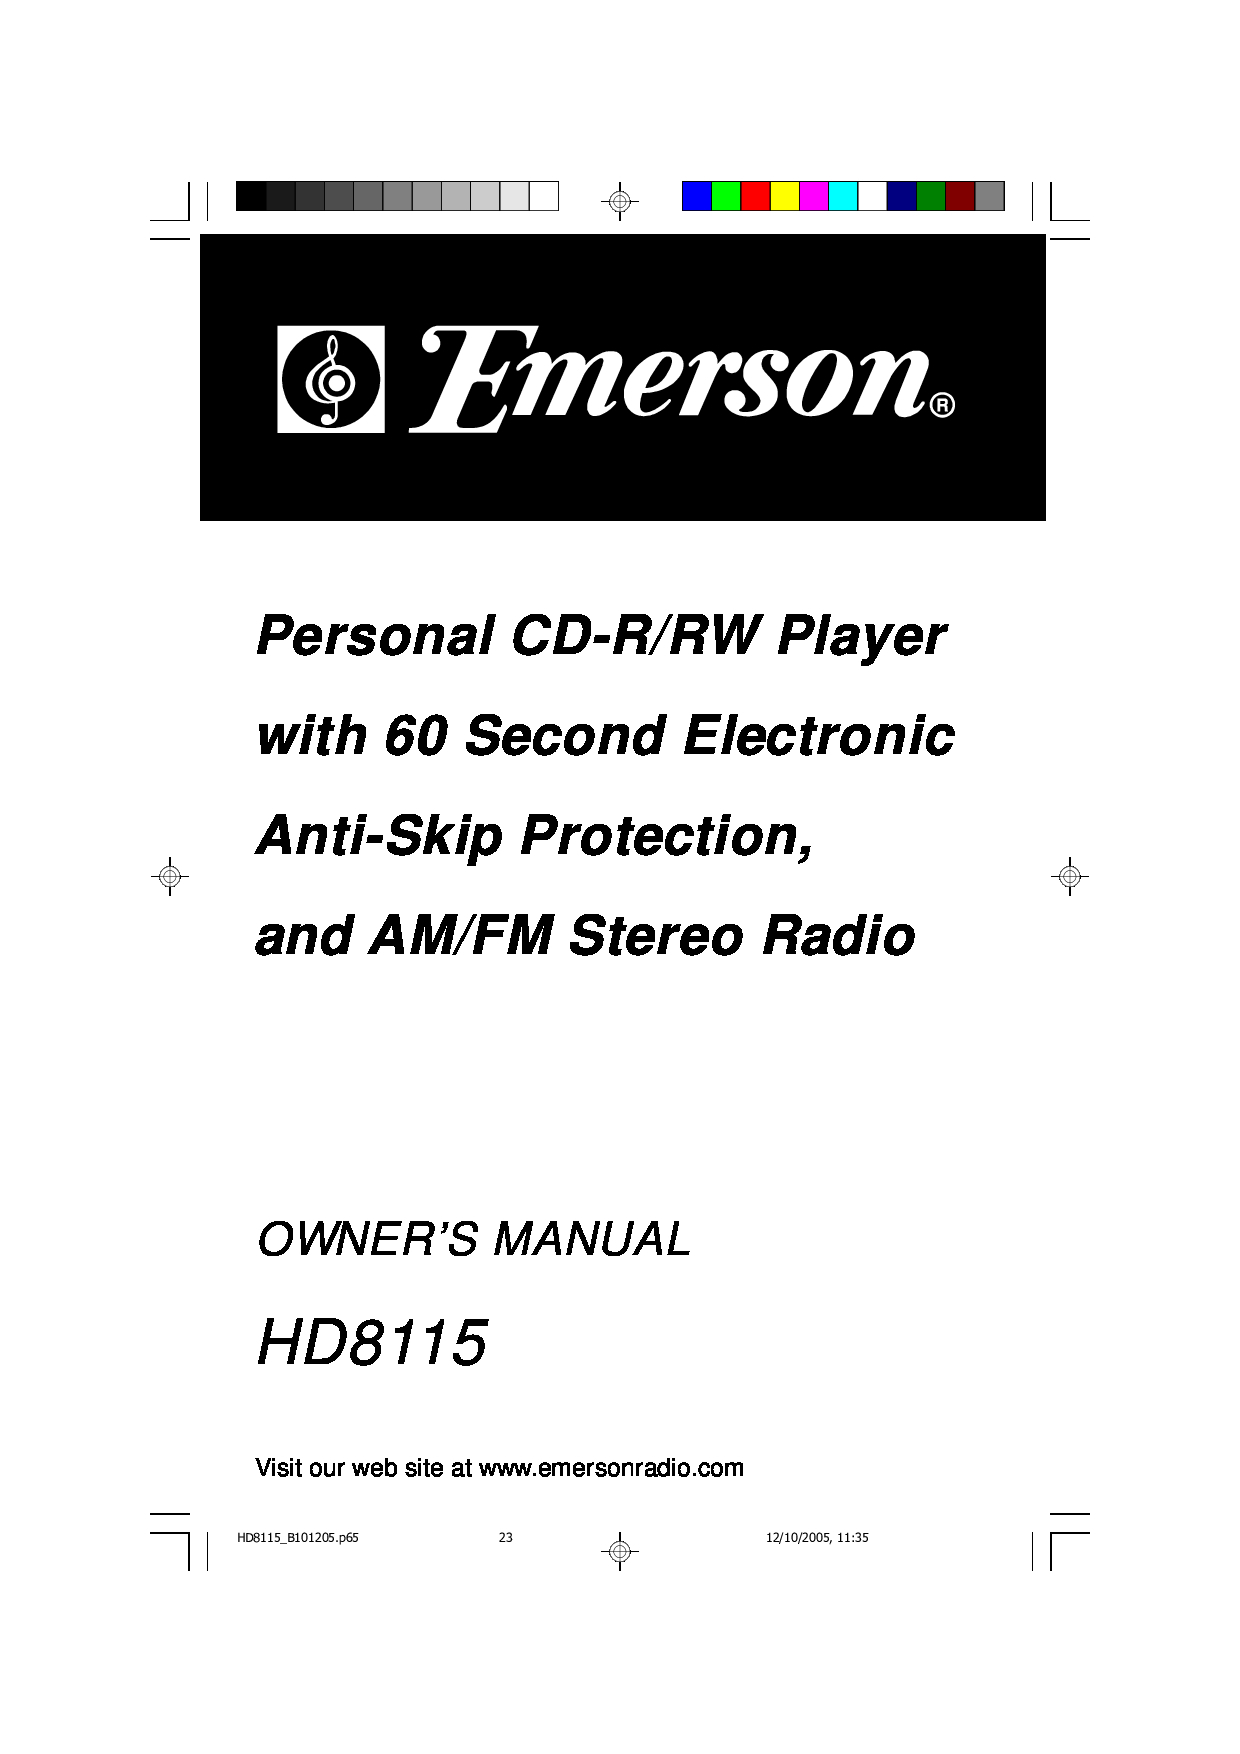 Emerson CD Player manuals